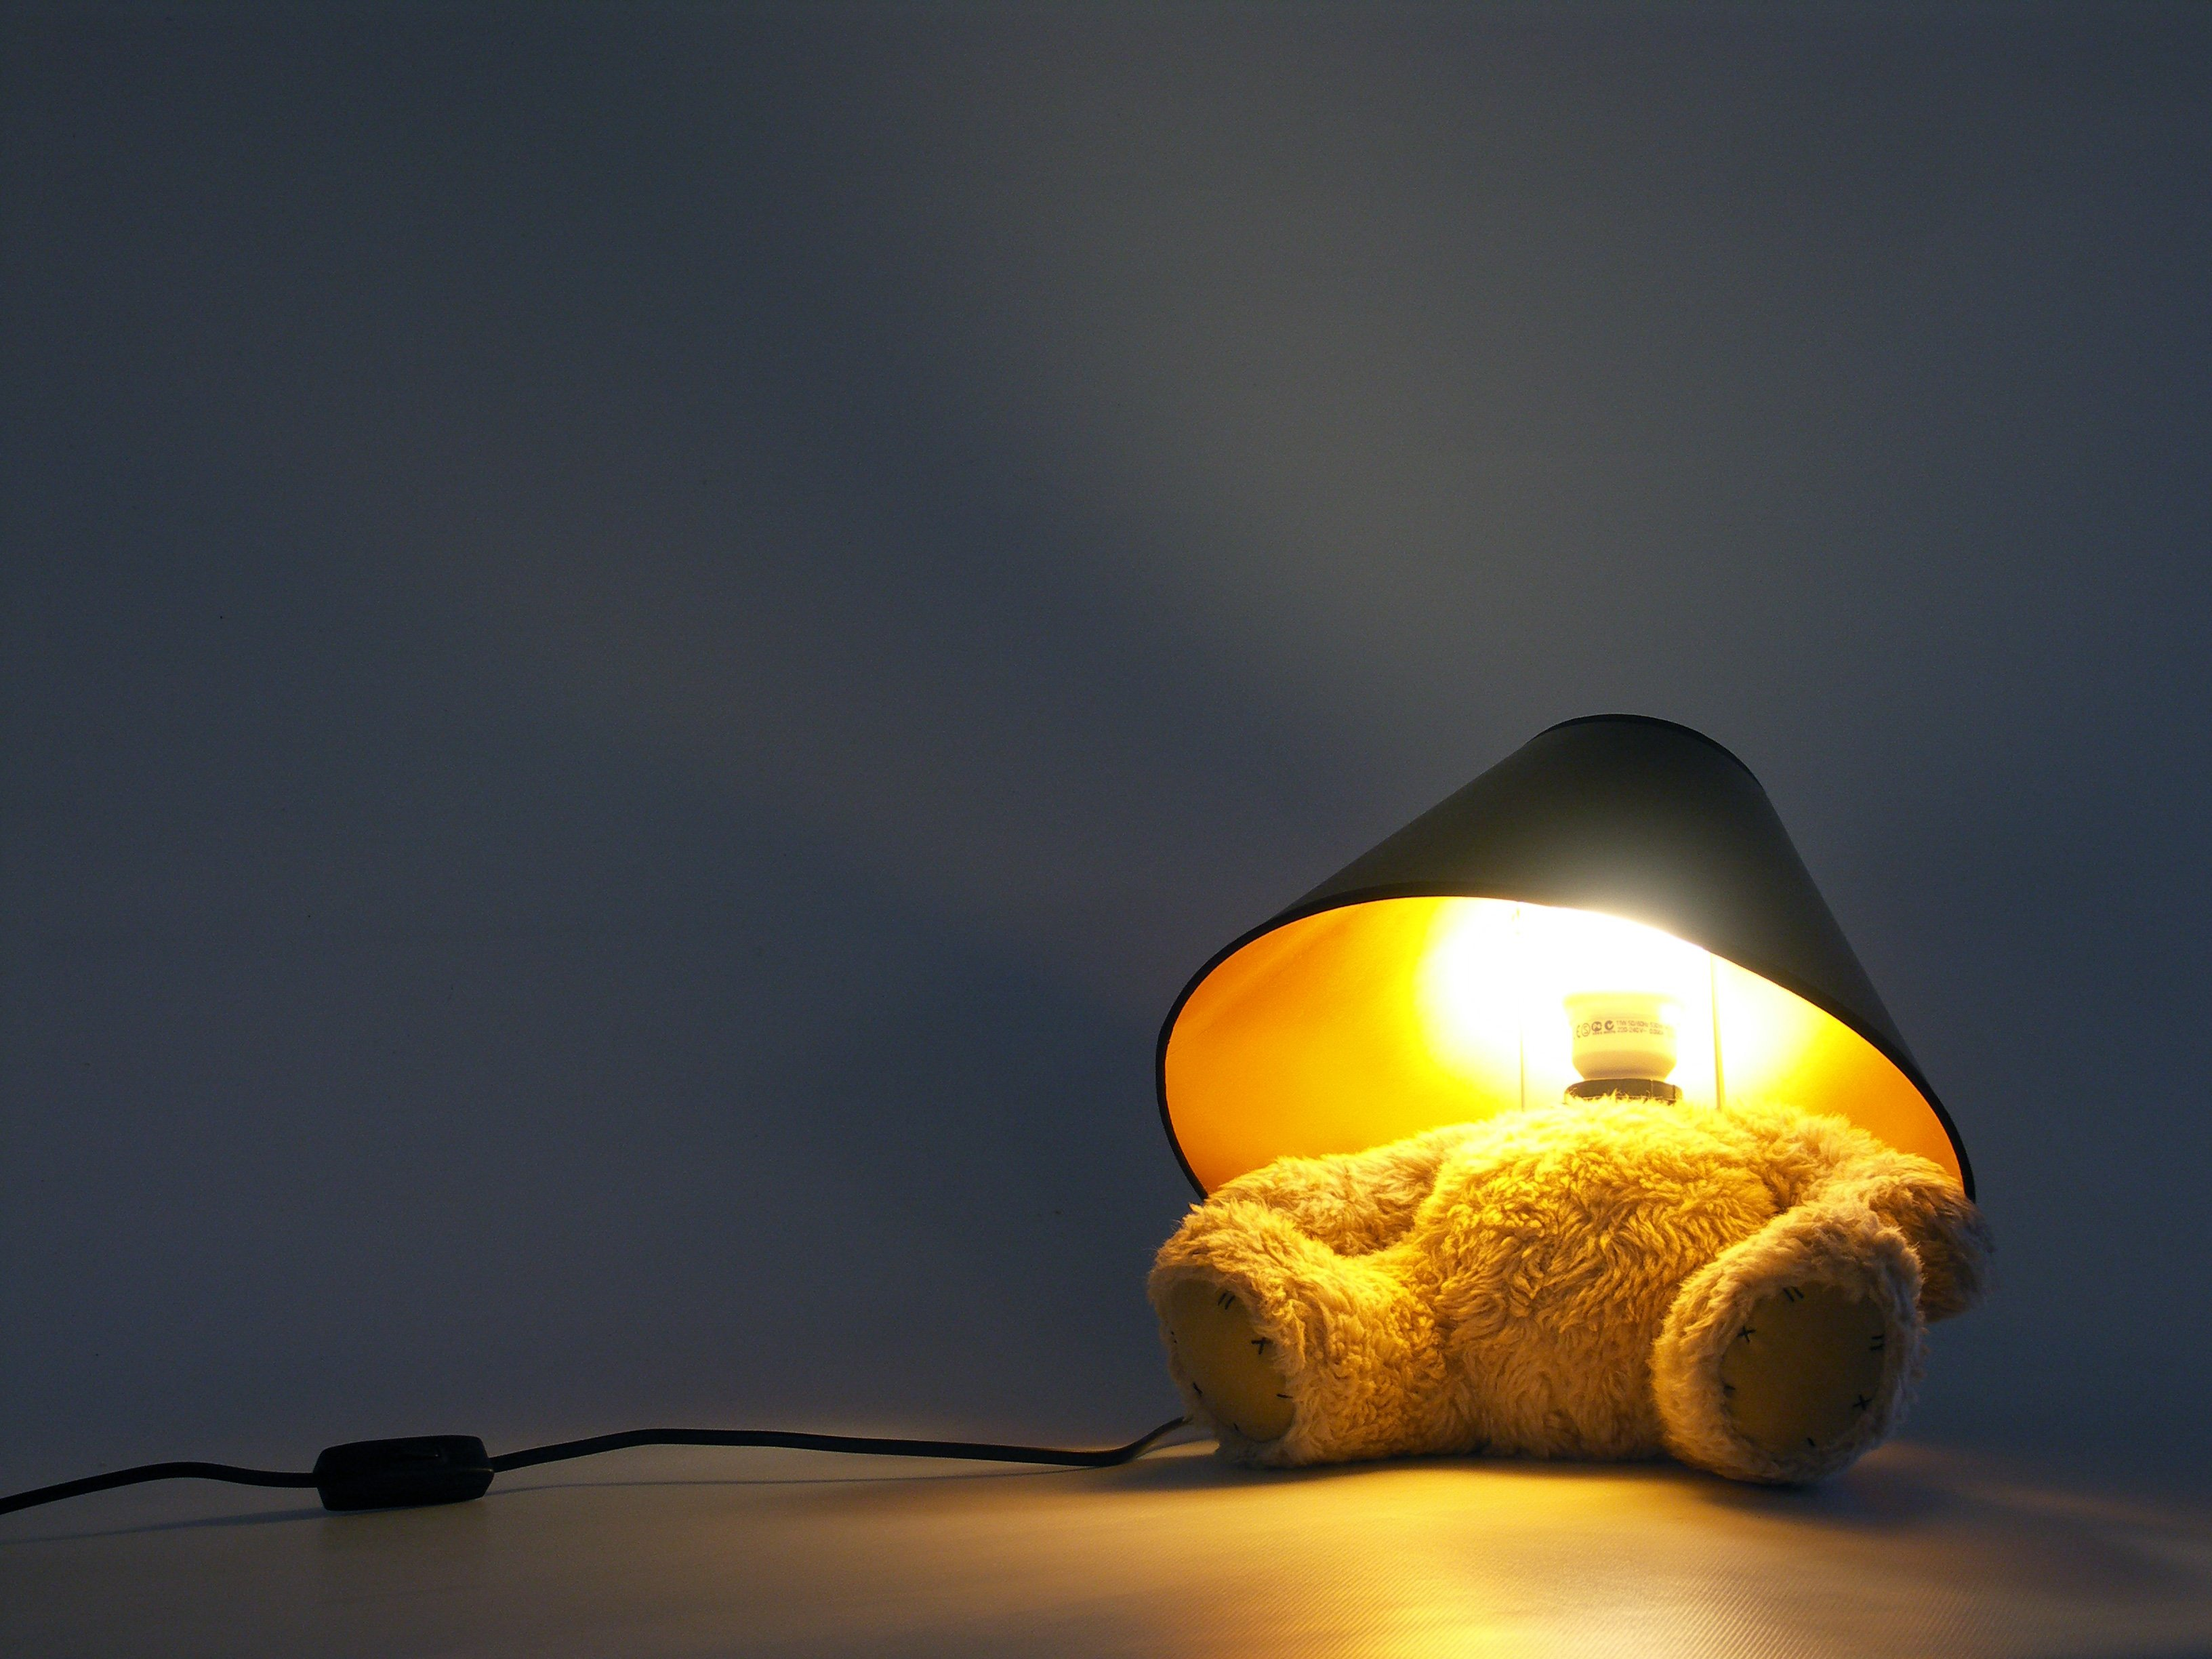 Teddy Bear Lamp Content Gallery : A cute teddy with a lamp for a head.